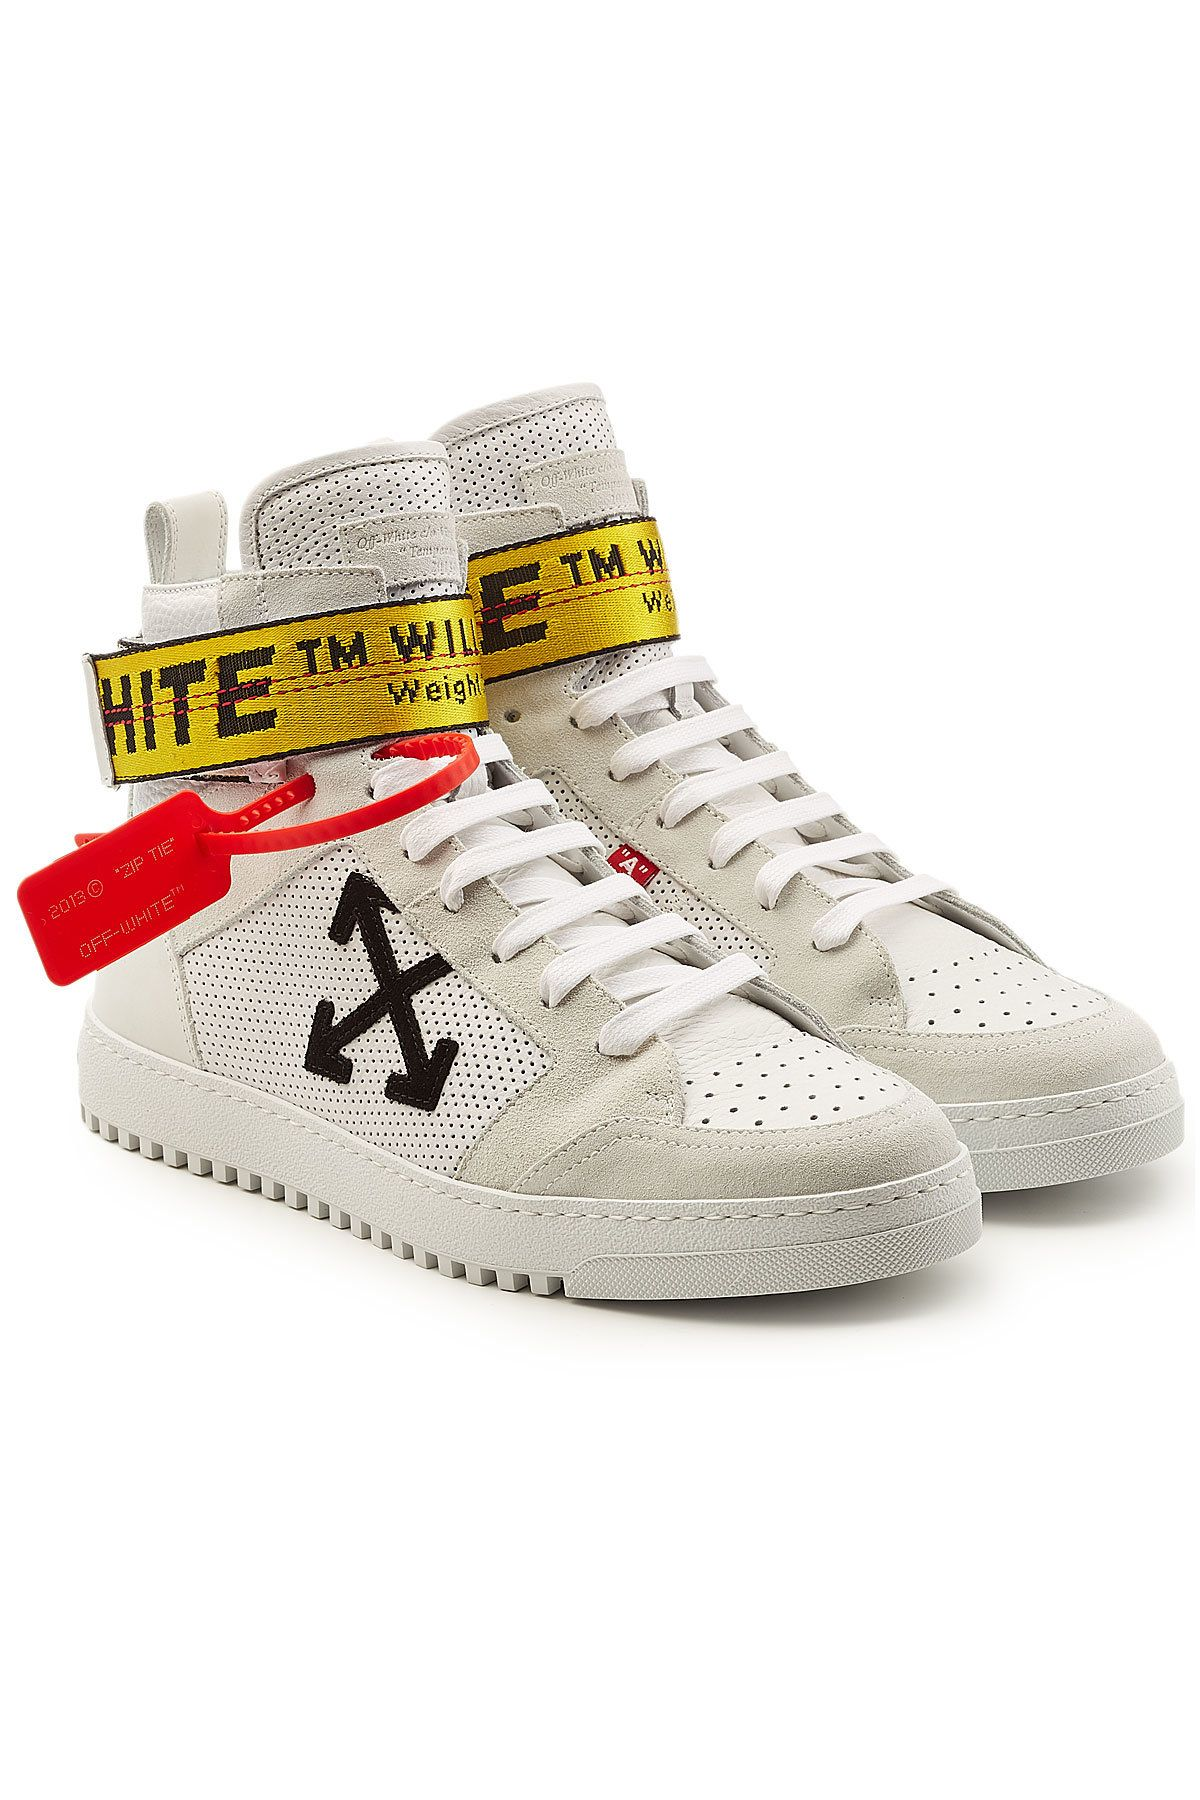 OFF-WHITE LEATHER HIGH-TOP SNEAKERS WITH SUEDE. #off-white #